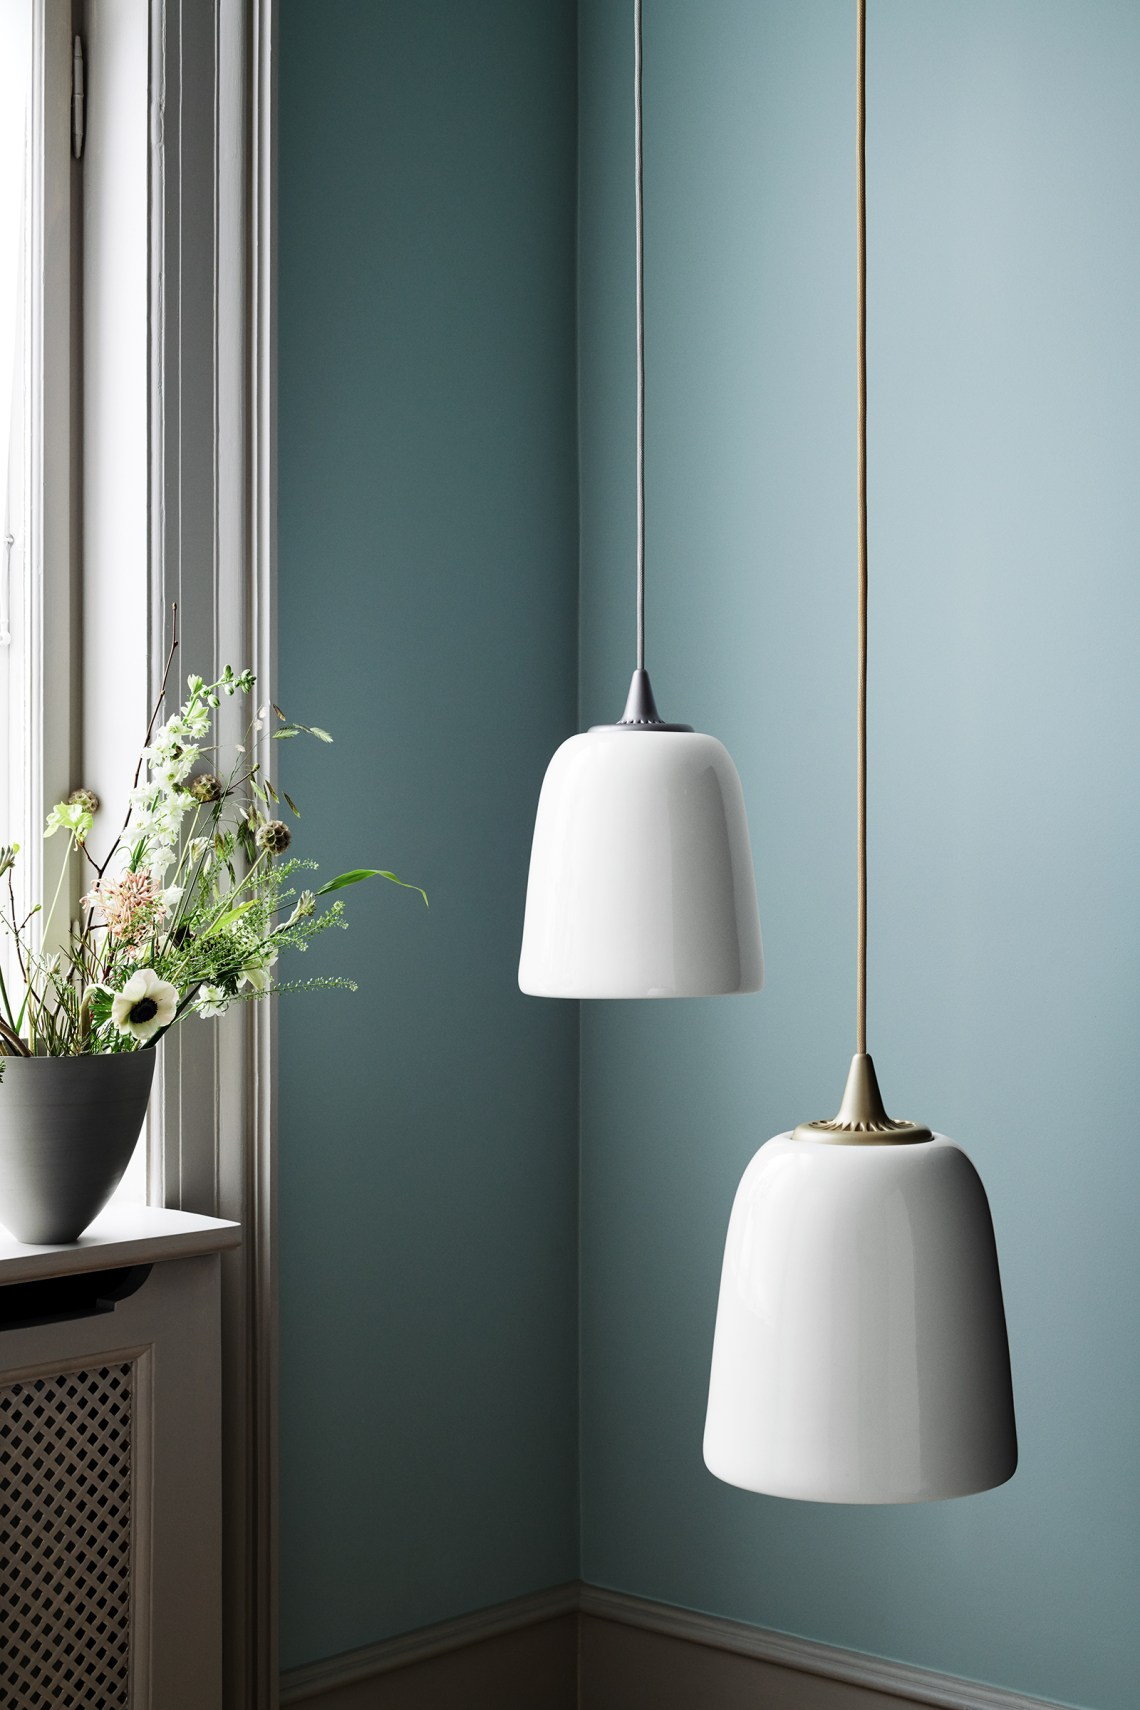 Dogu pendant by Lightyears - via Coco Lapine Design blog